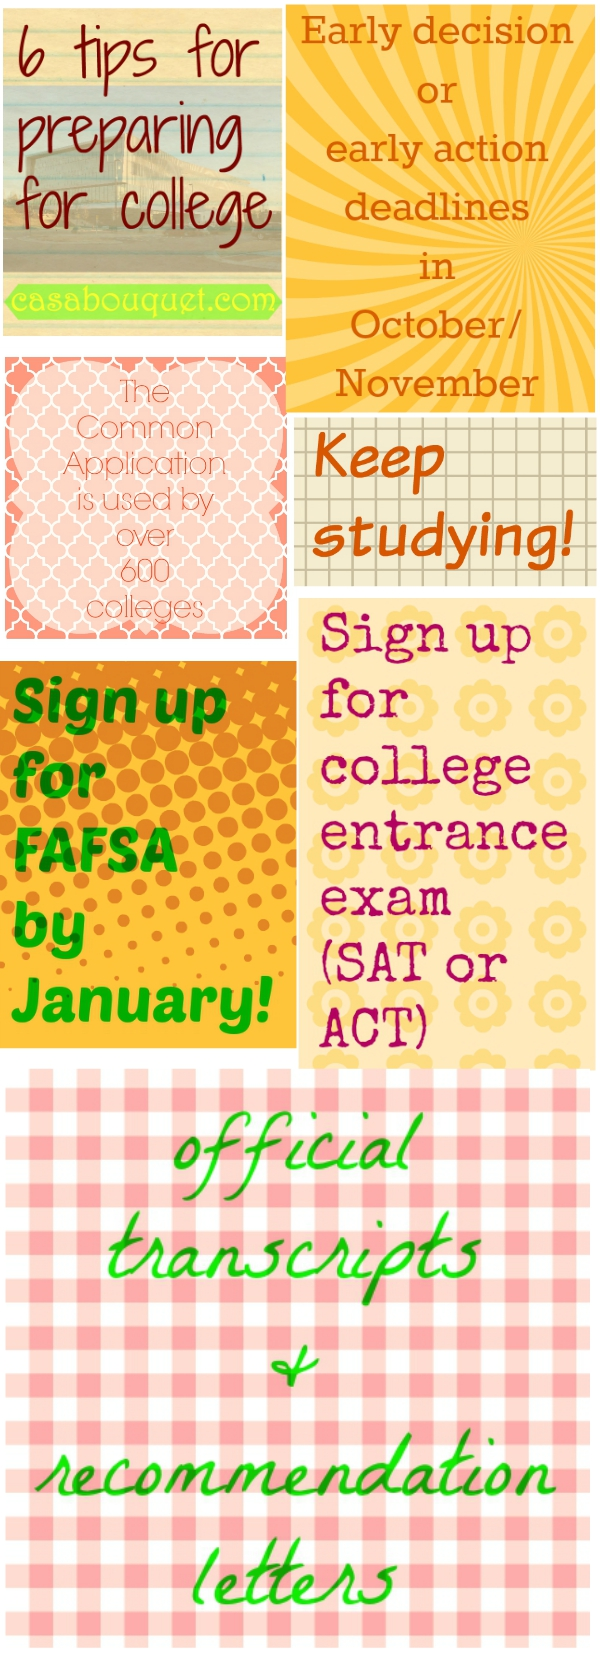 College preparation at the end of high school includes planning, tips, and checklists. Entrance tests, applications, financial aid, and more!